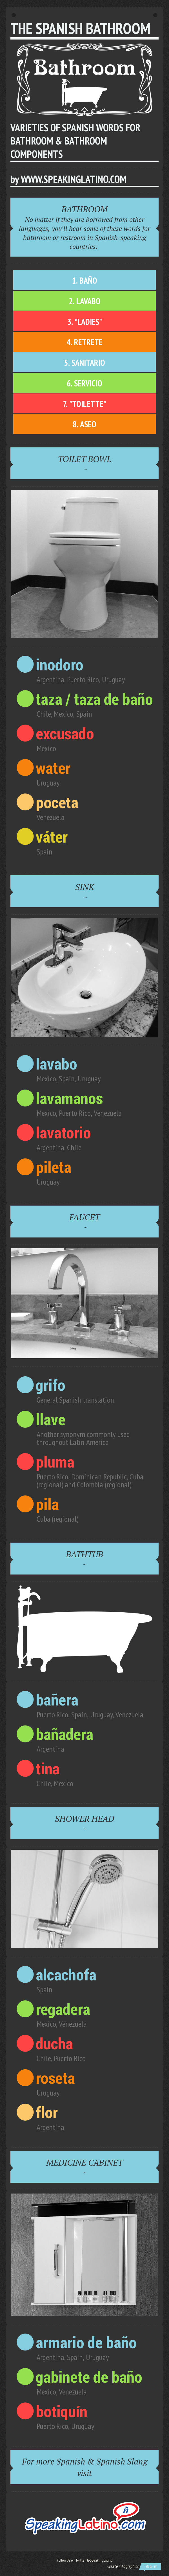 Spanish Words For Bathroom And Bathroom Components Infographic Learn Spanish Online Spanish Vocabulary Spanish Words